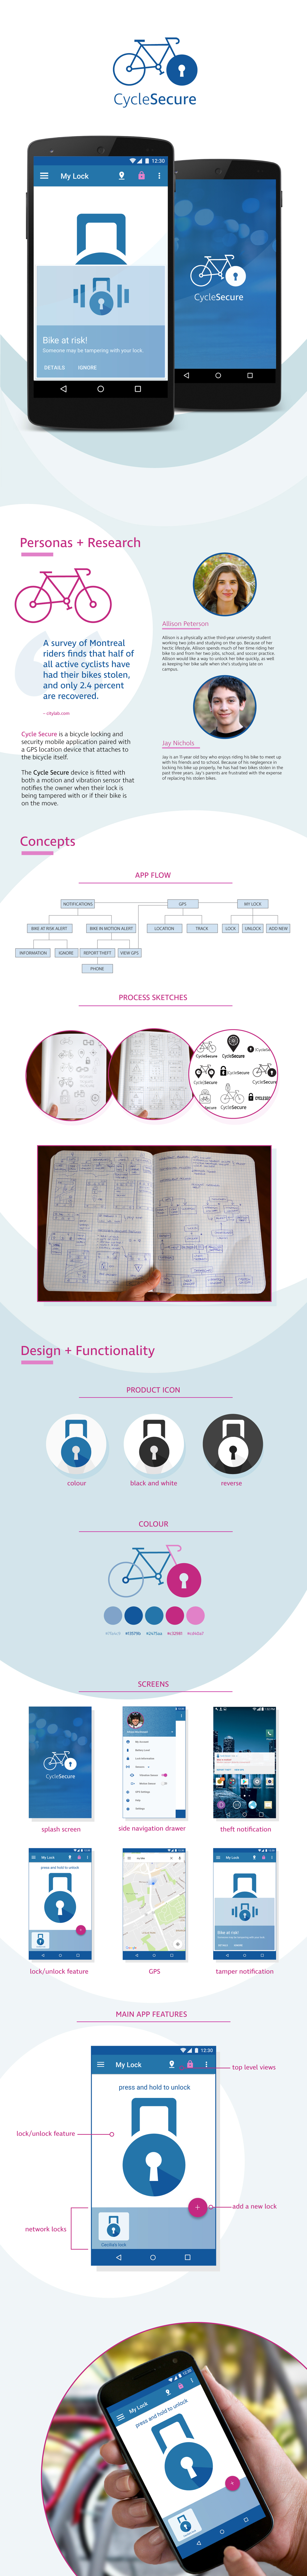 app student security Bicycle lock Case Study gps material design android process